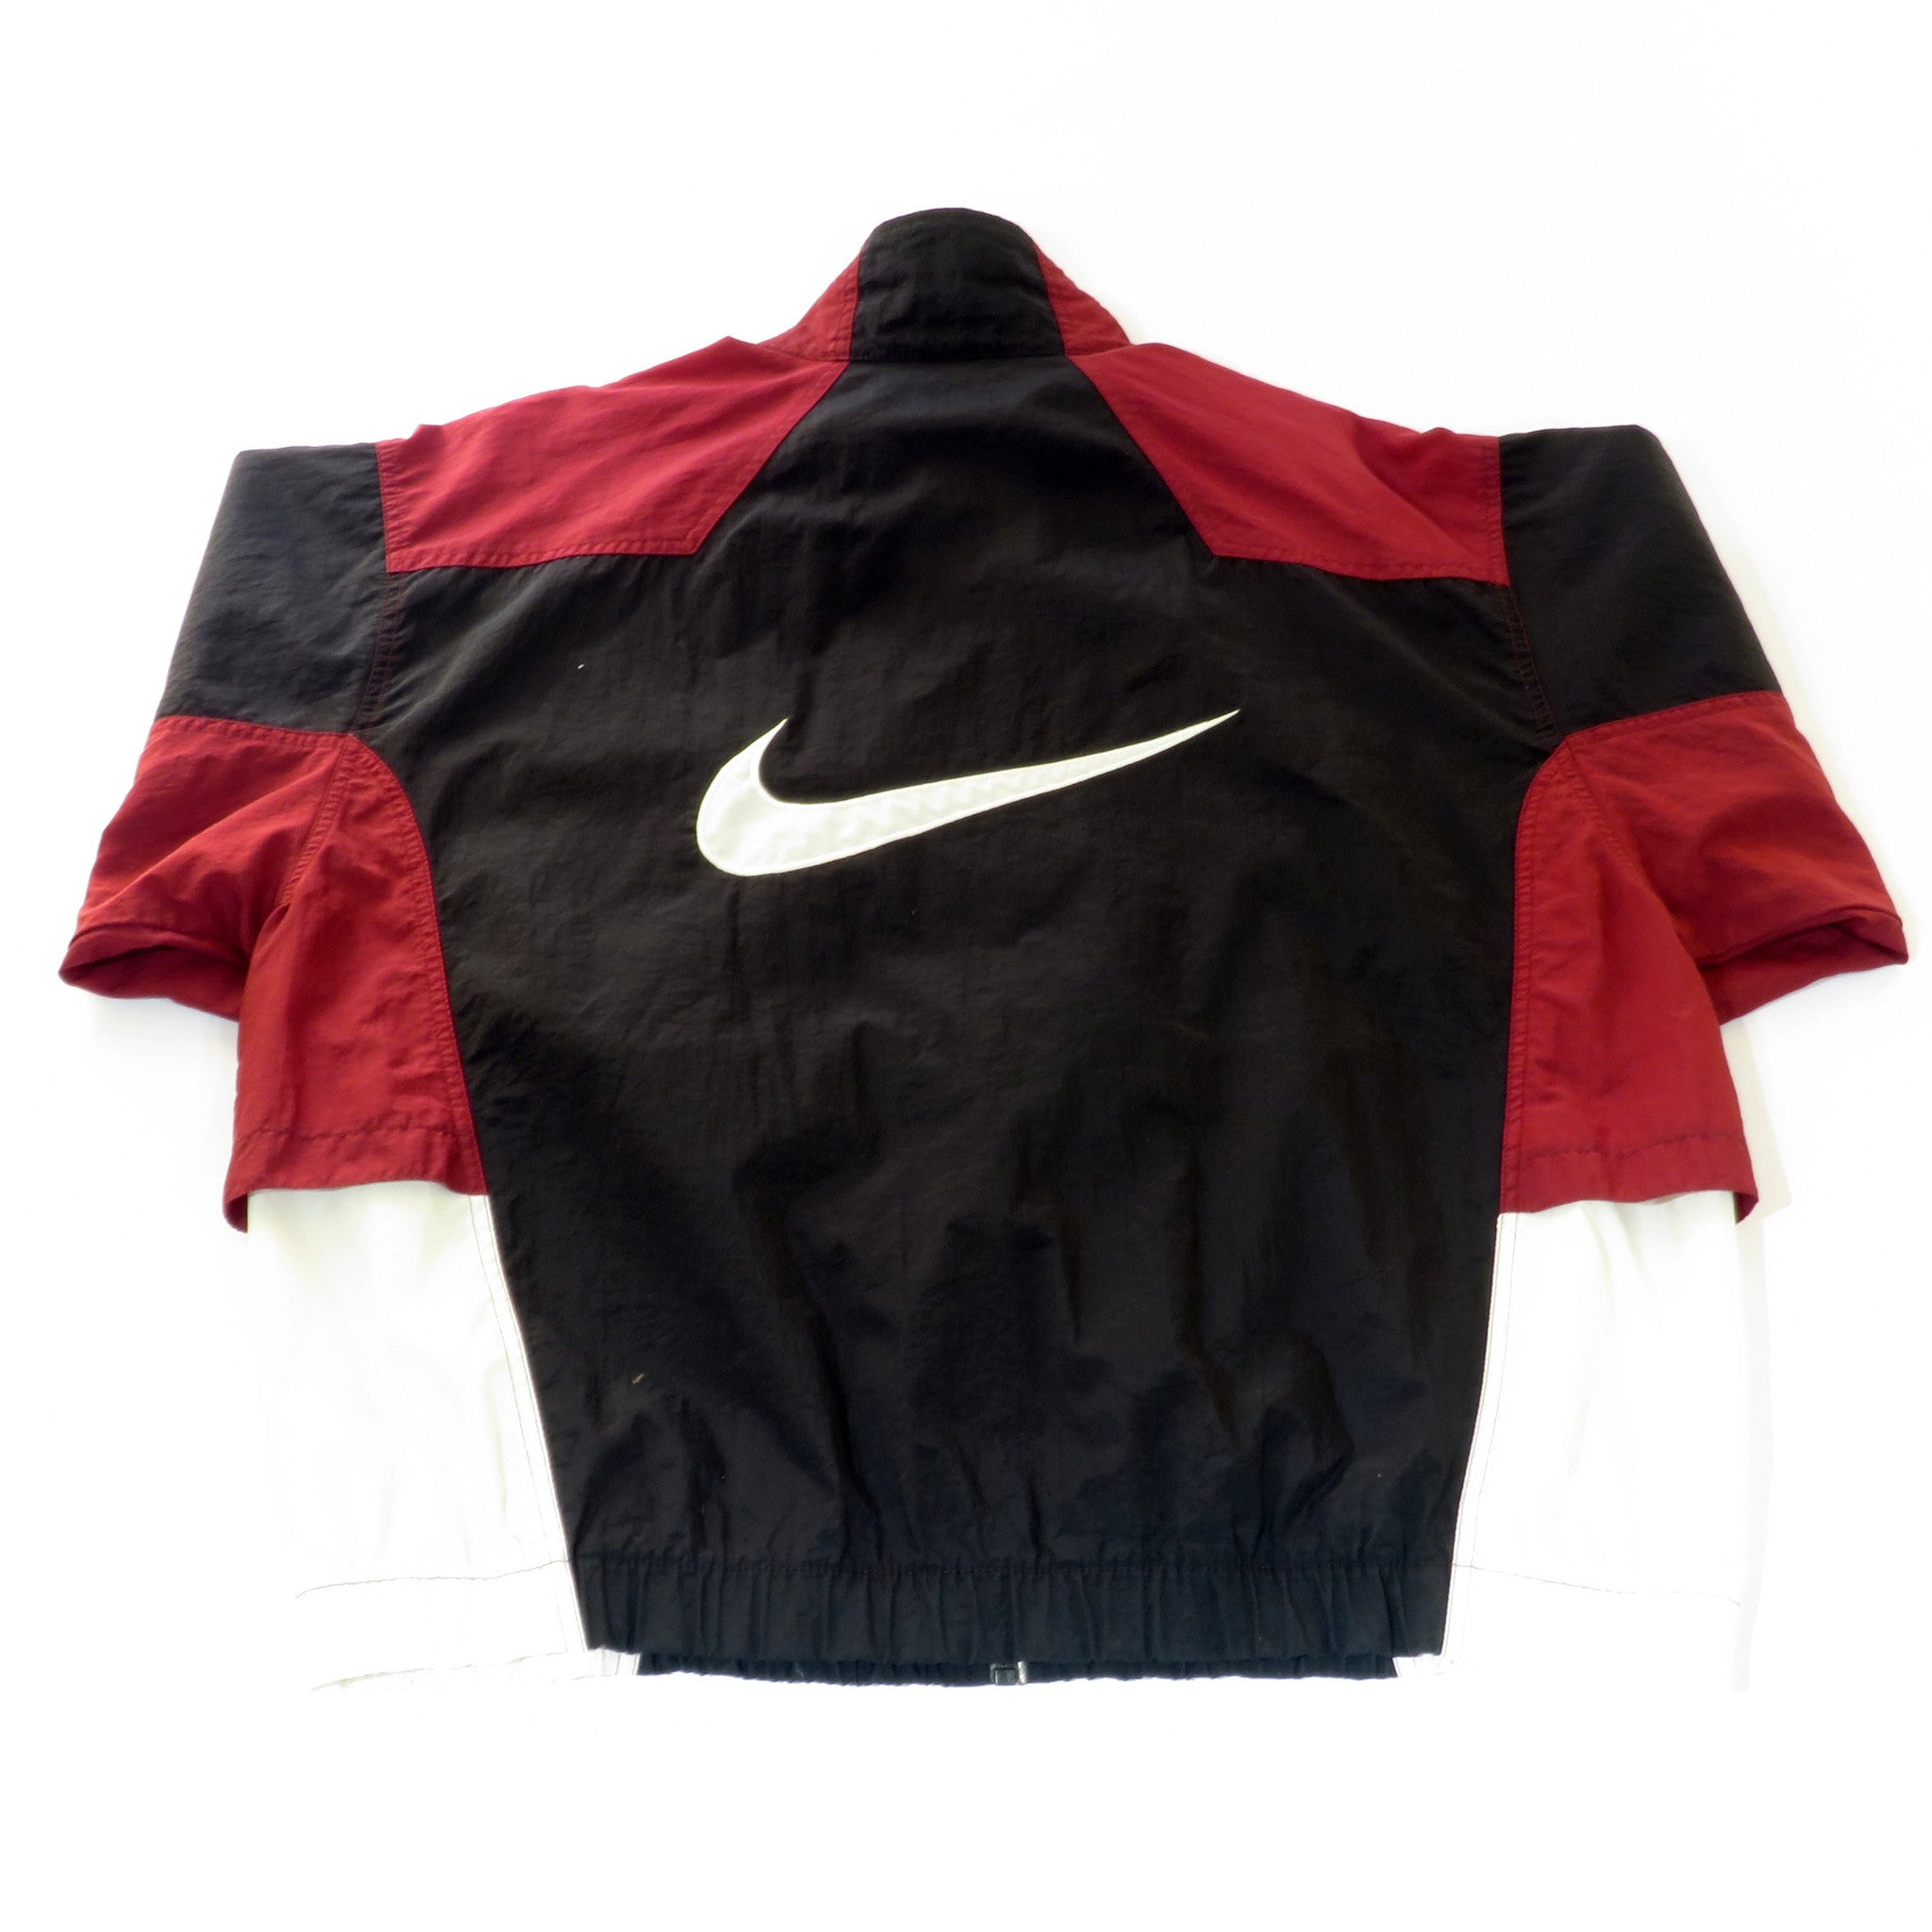 Nike Tri Color Zip Up Windbreaker Jacket Sz L